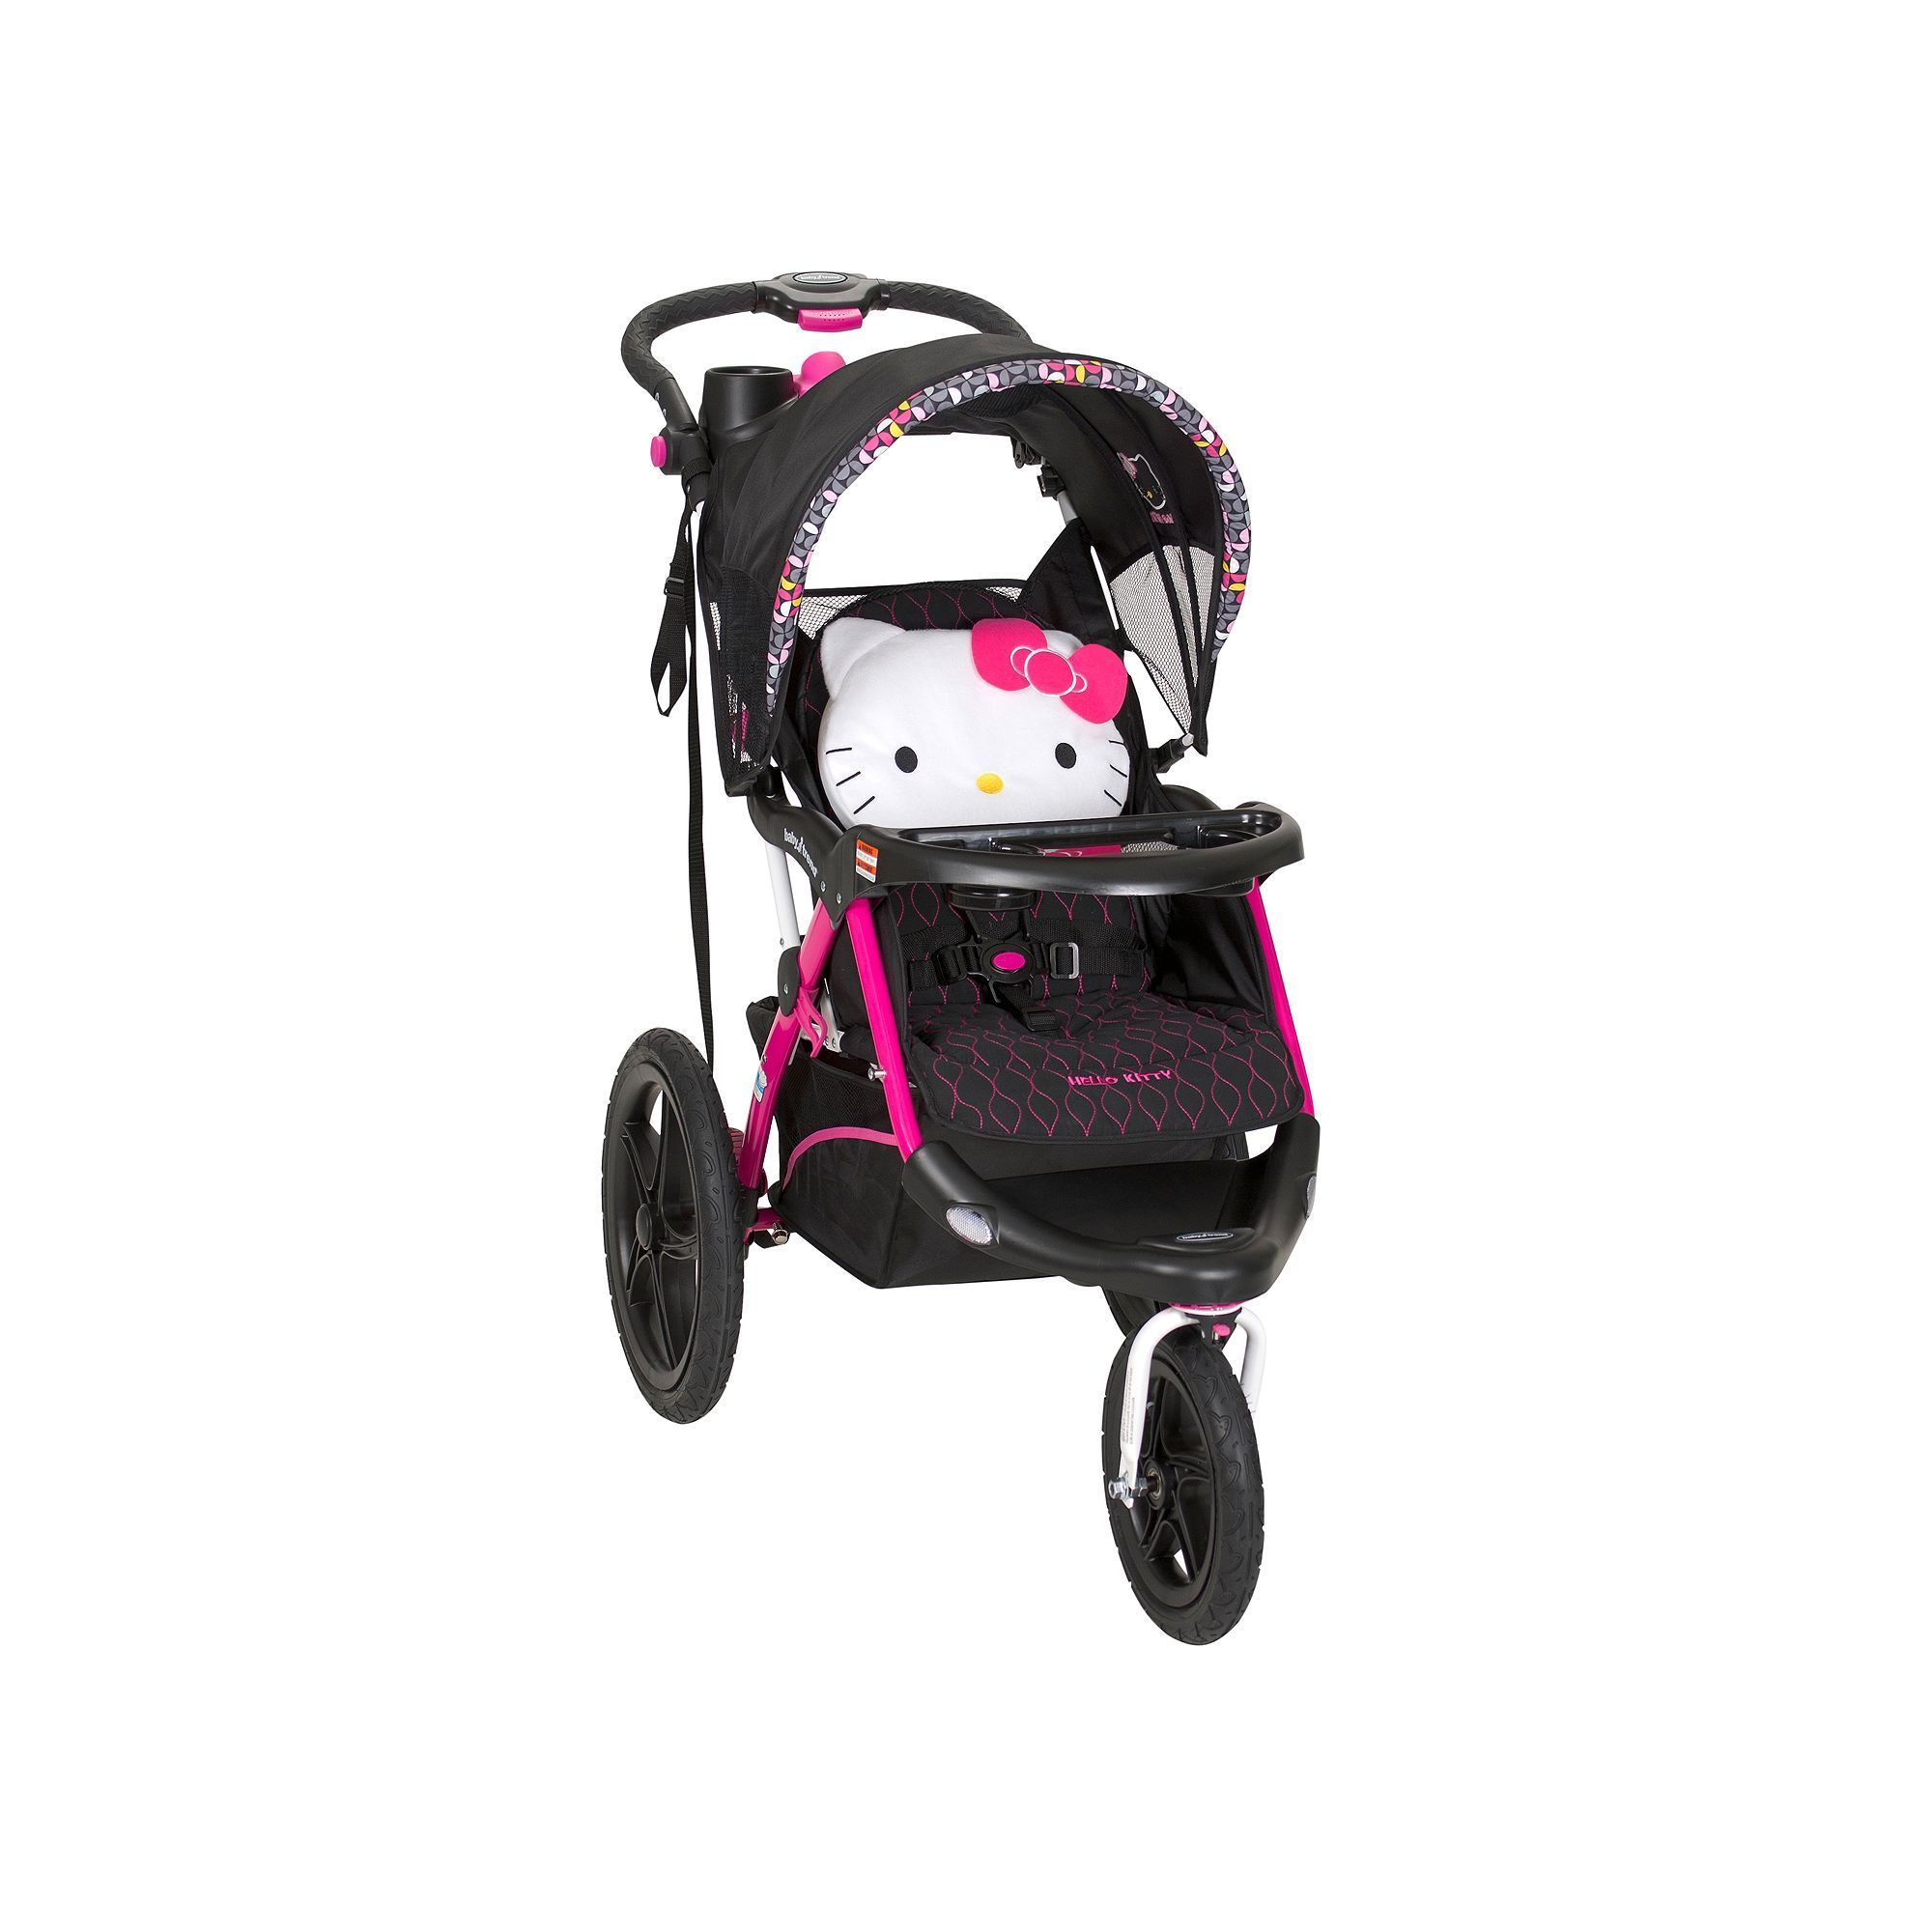 Hello Kitty' Pin Wheel Calypso Jogger Stroller by Baby Trend Pink